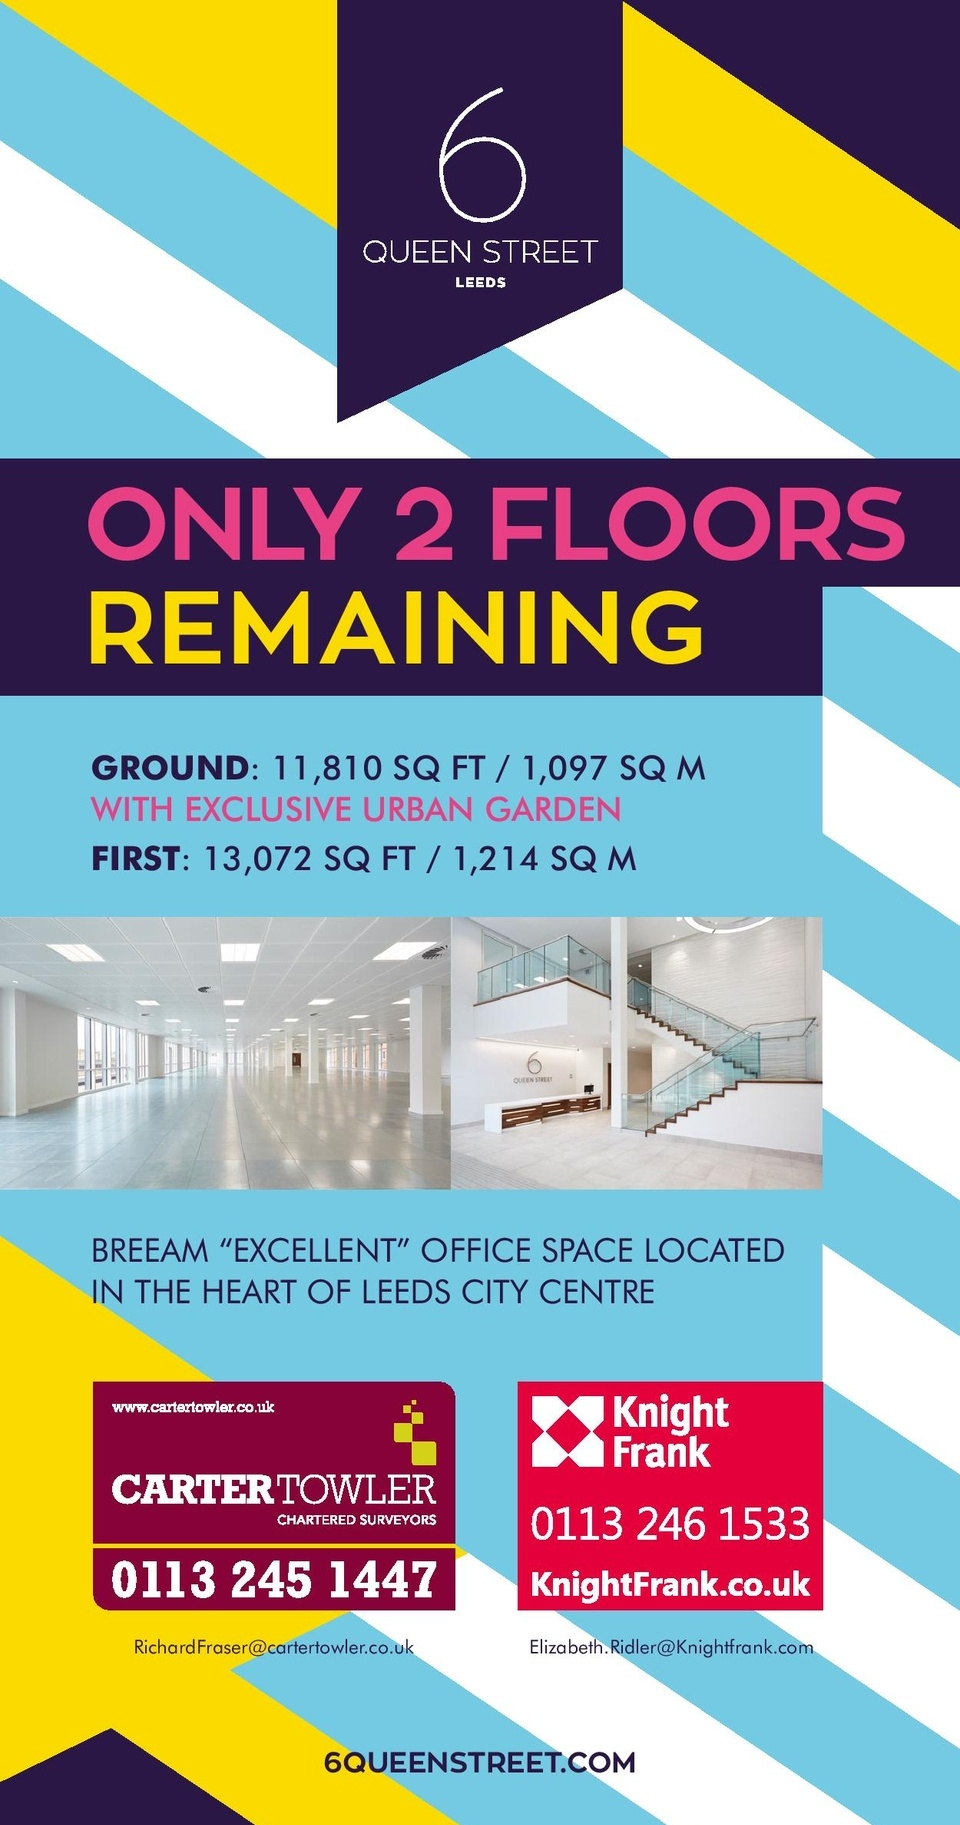 6 Queen Street - Largest office letting deal in Leeds this year at new flagship development